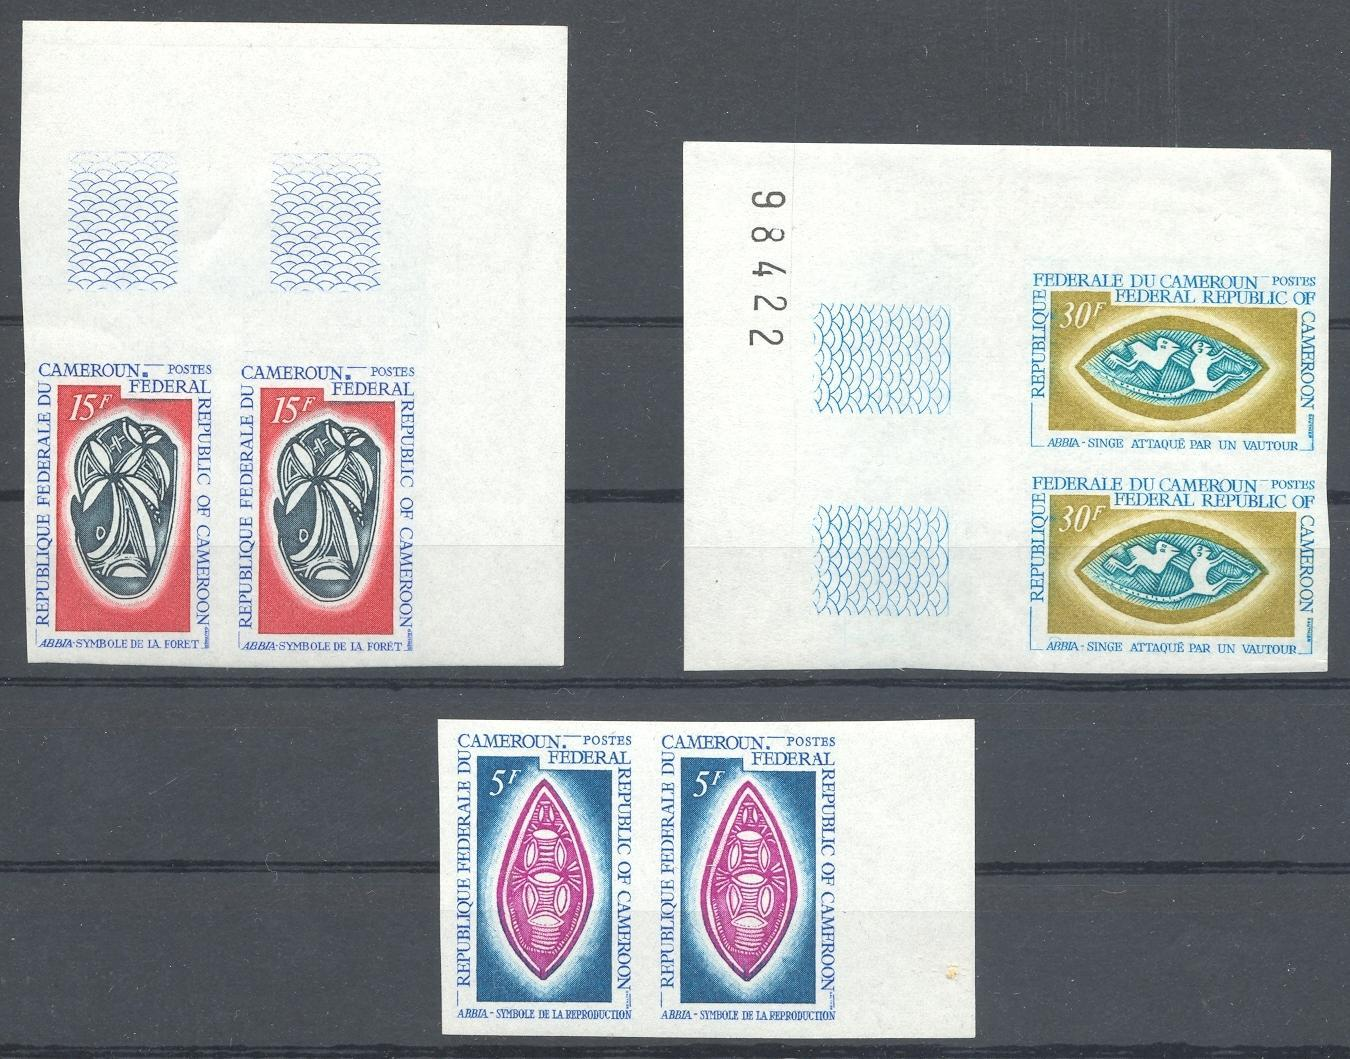 Stamps with Symbols, Forest, Monkey from Cameroon (image for product #039214)